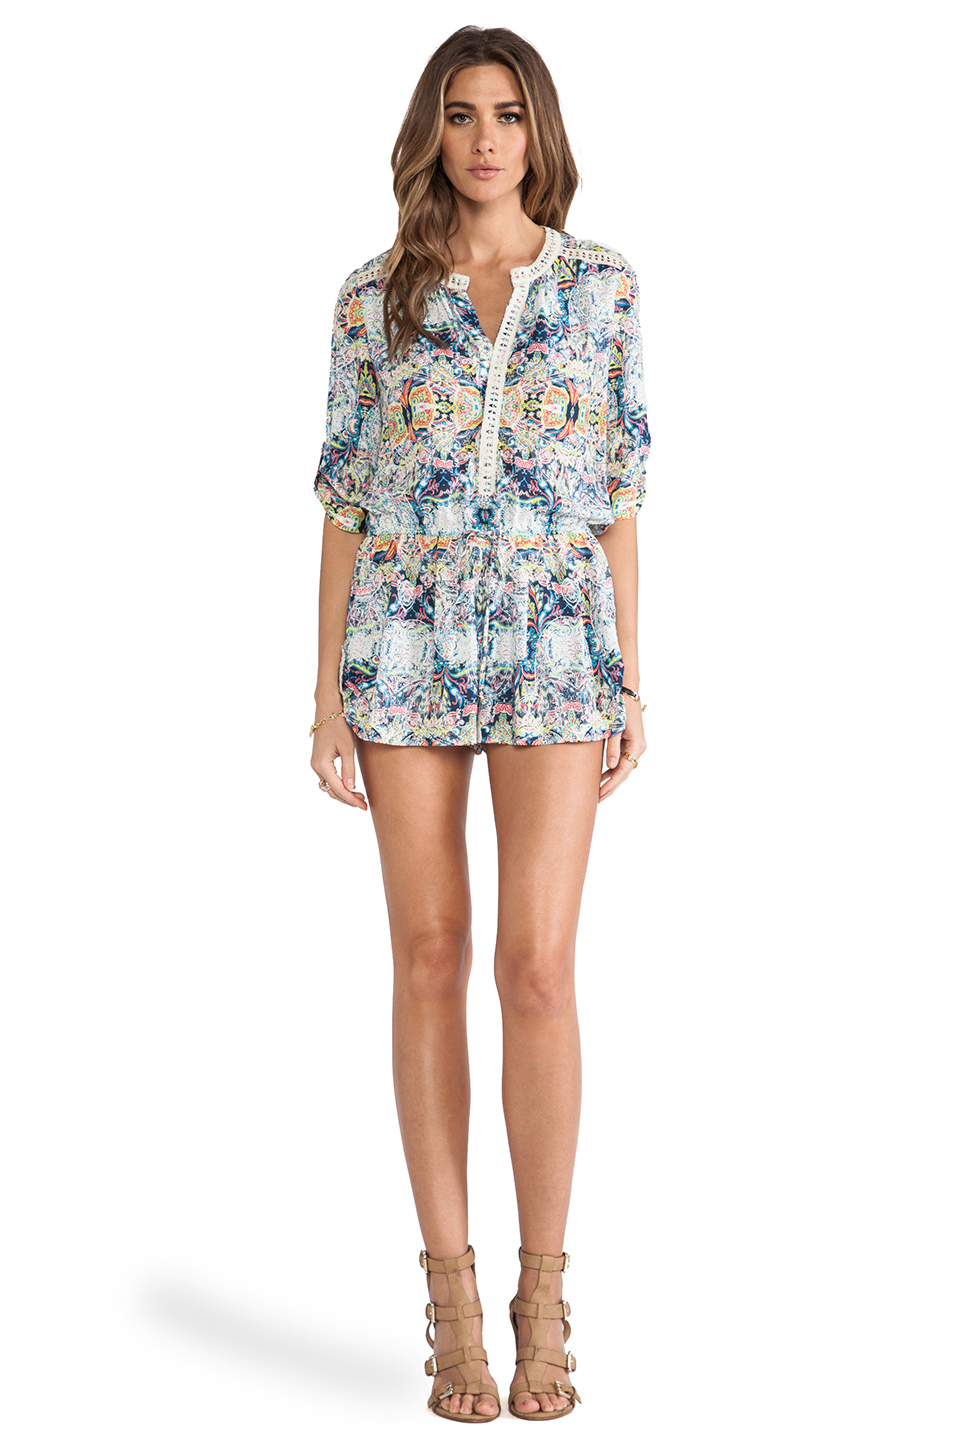 Twelfth Street By Cynthia Vincent Lace Inset Romper in Indian Paisley | REVOLVE